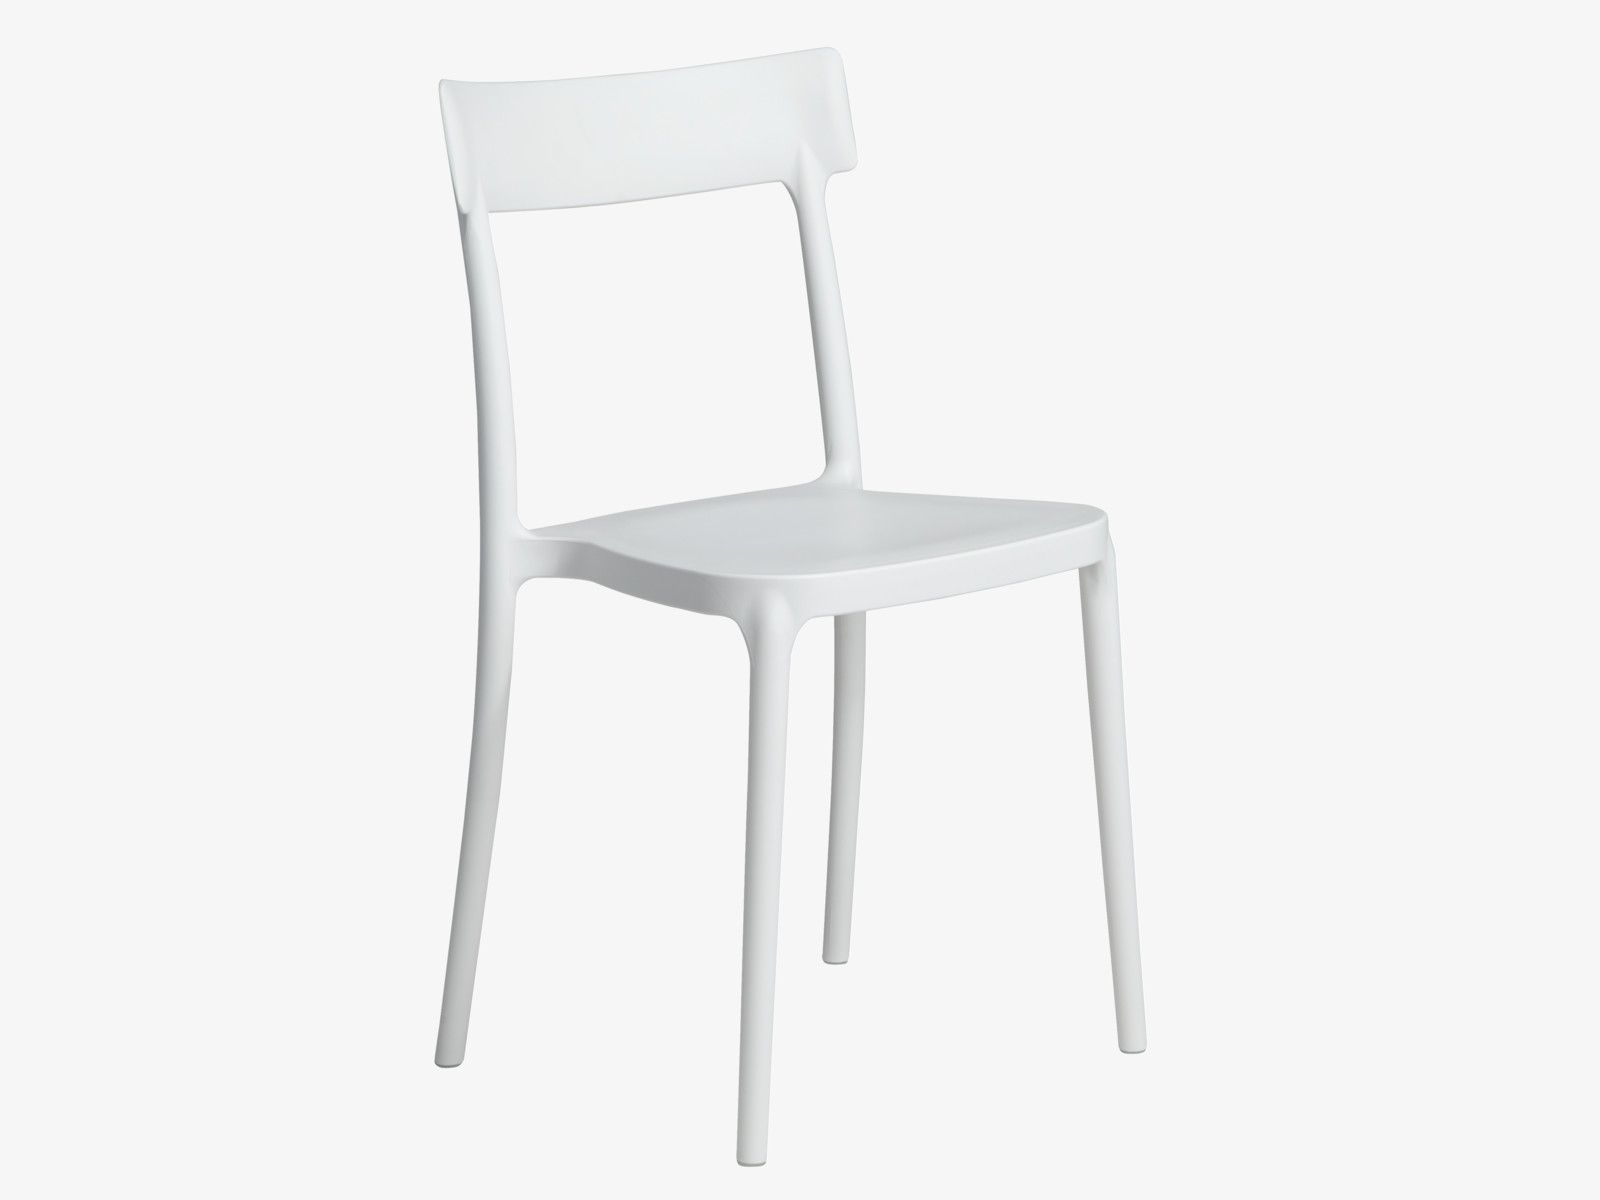 chairs manor zuo a ghost mod house white anime plastic design product polycarbonate dining chair moss